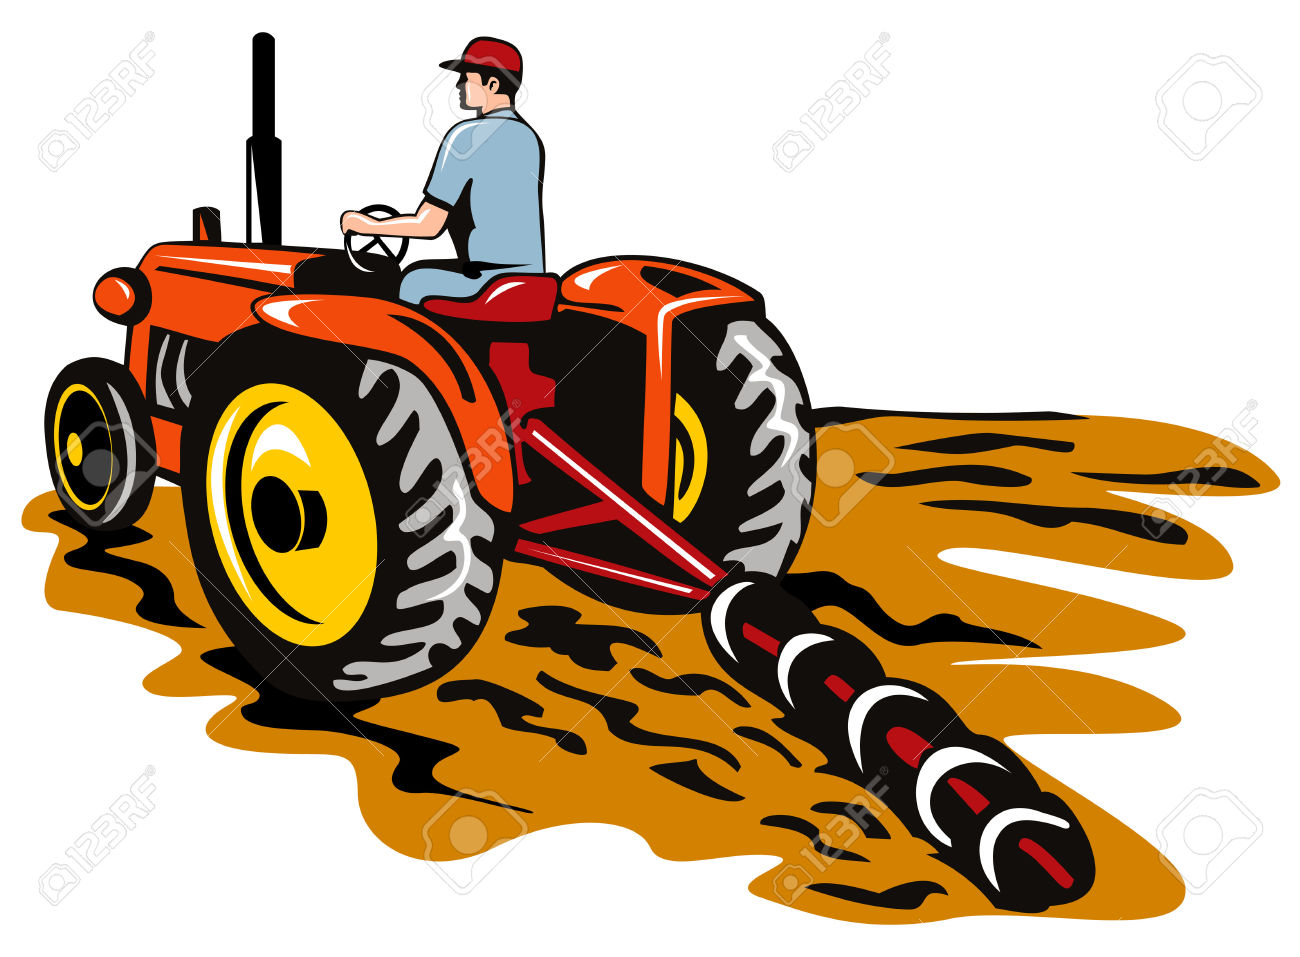 Free clipart of a tractor and plow jpg royalty free library Collection of Tractor clipart | Free download best Tractor clipart ... jpg royalty free library